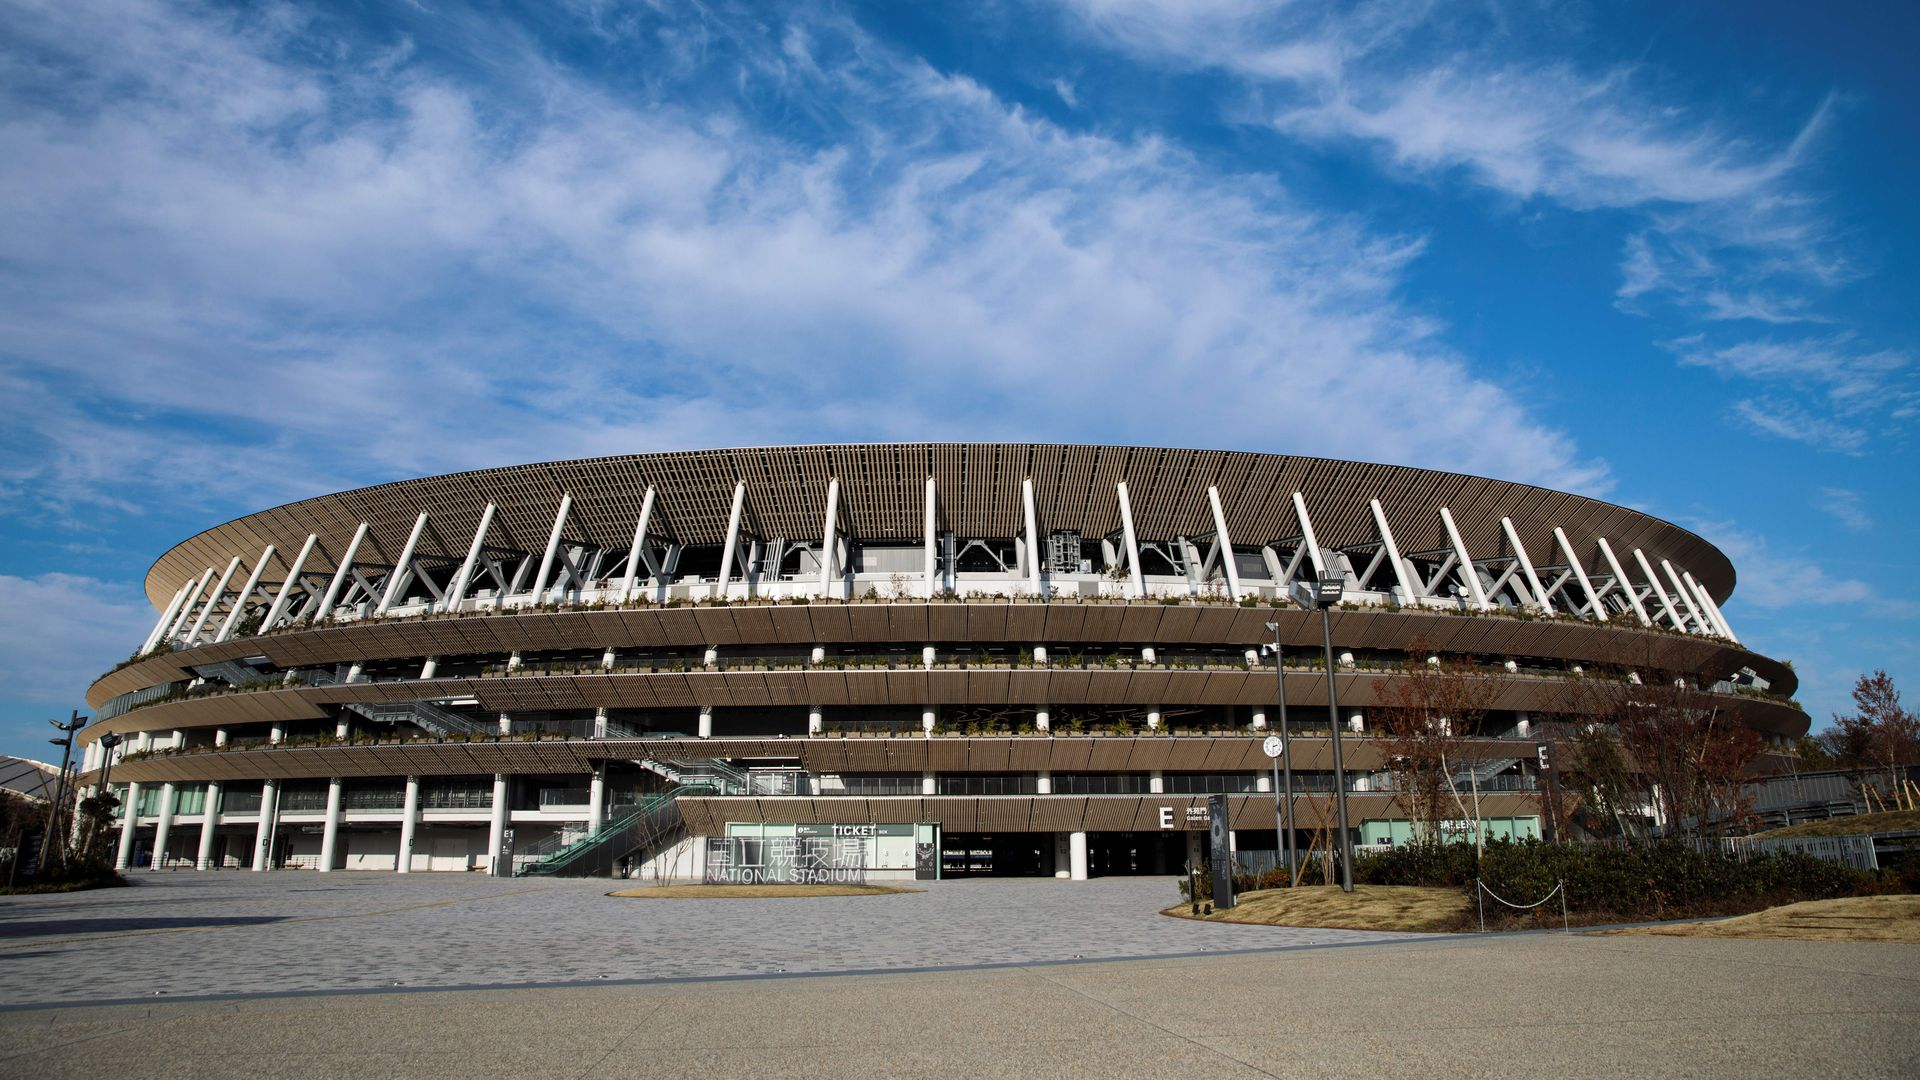 Tokyo's National Stadium for the 2020 Olympics